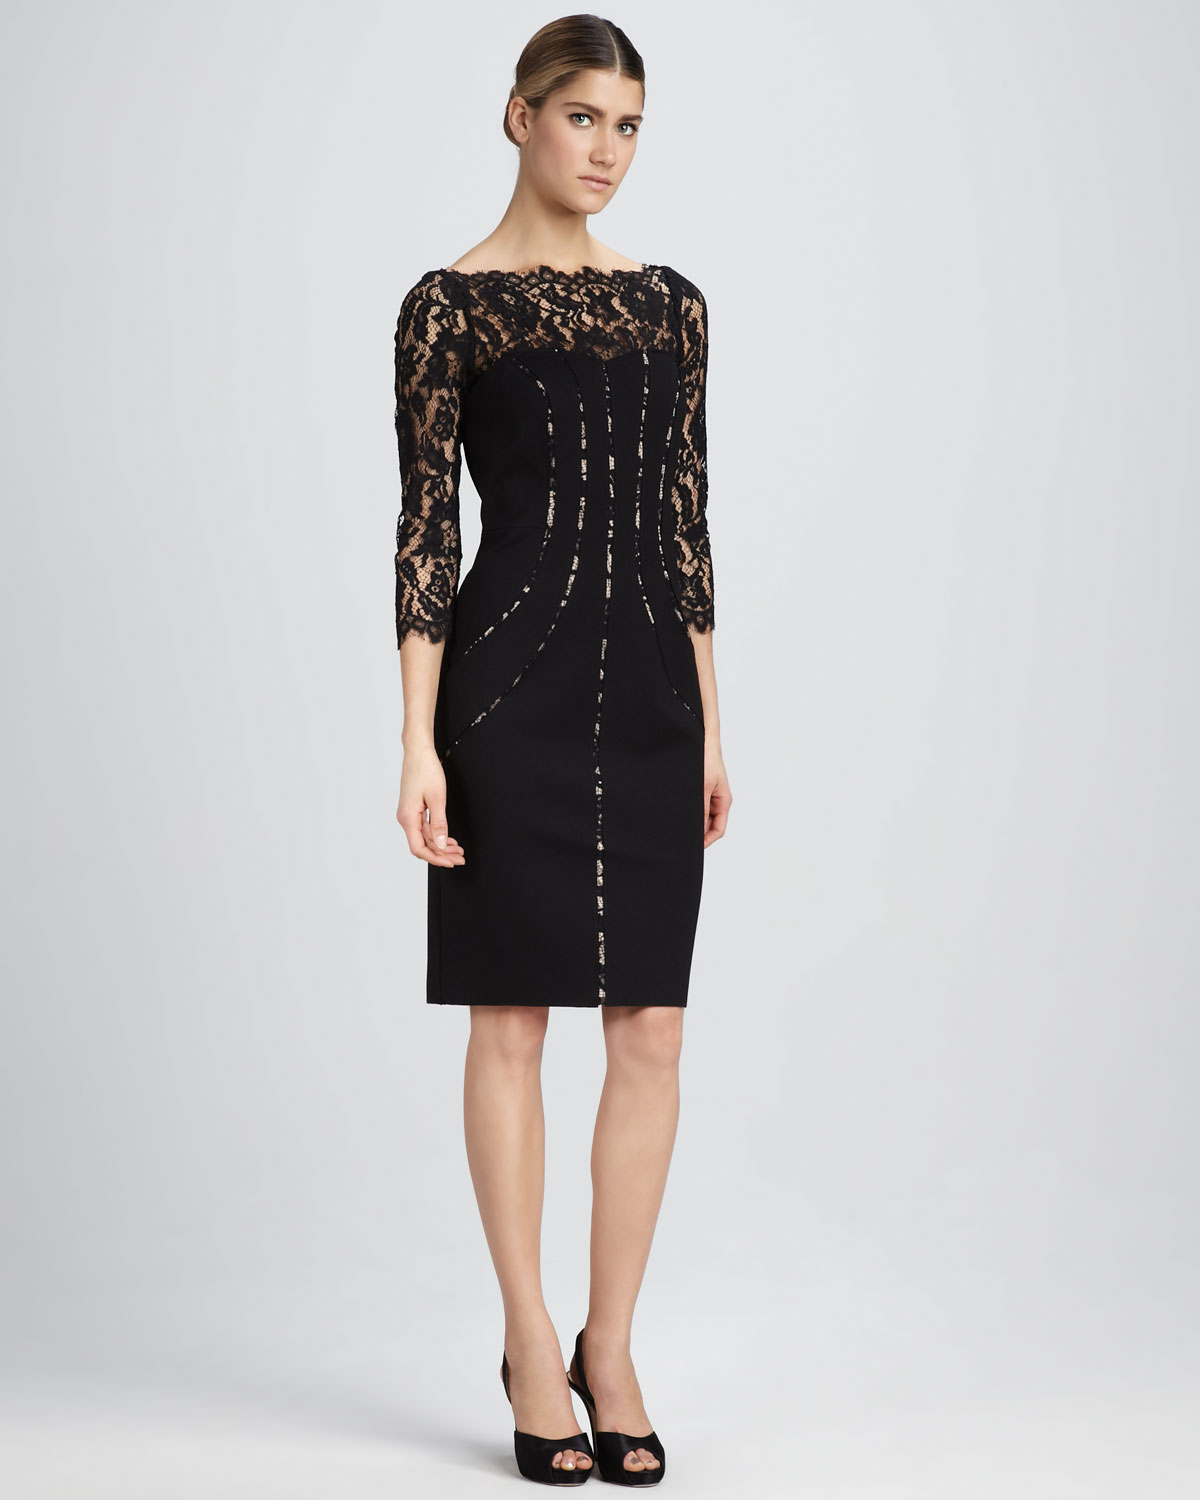 Lace Dresses With Sleeves: Lace Cocktail Dress Picture Collection